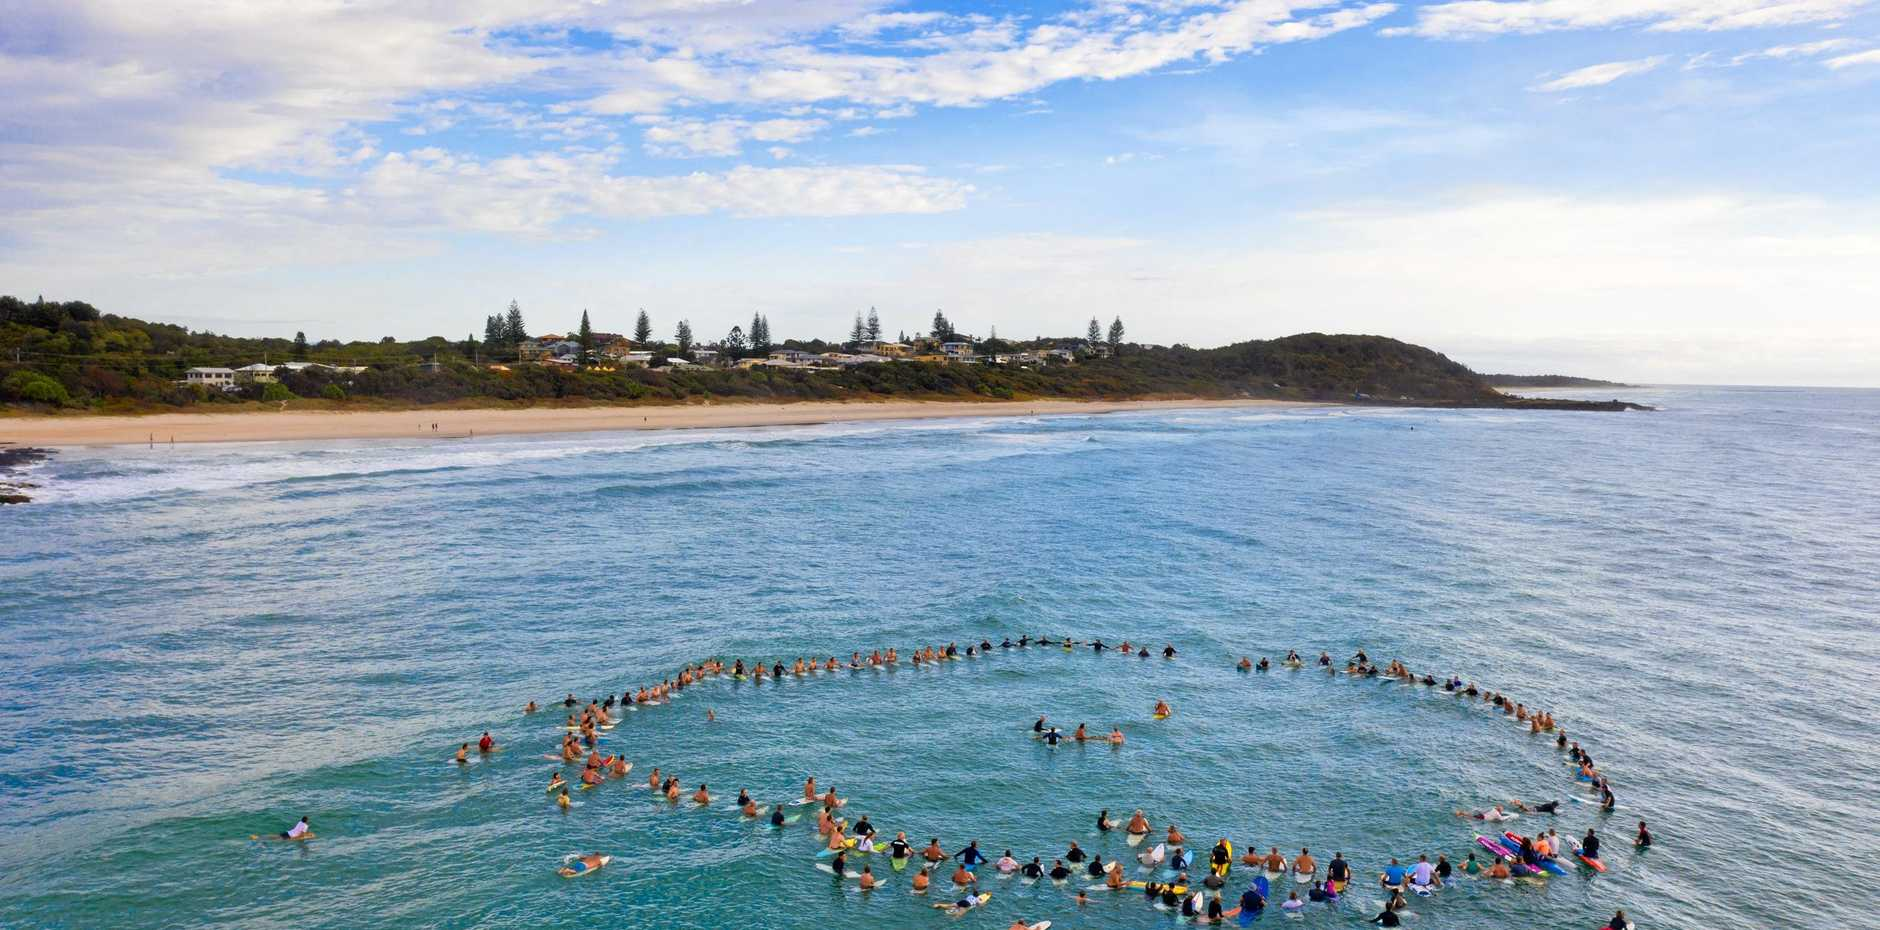 A paddle out was held in memory of well respected community member Raz Burtonwood who went missing in ocean last month.